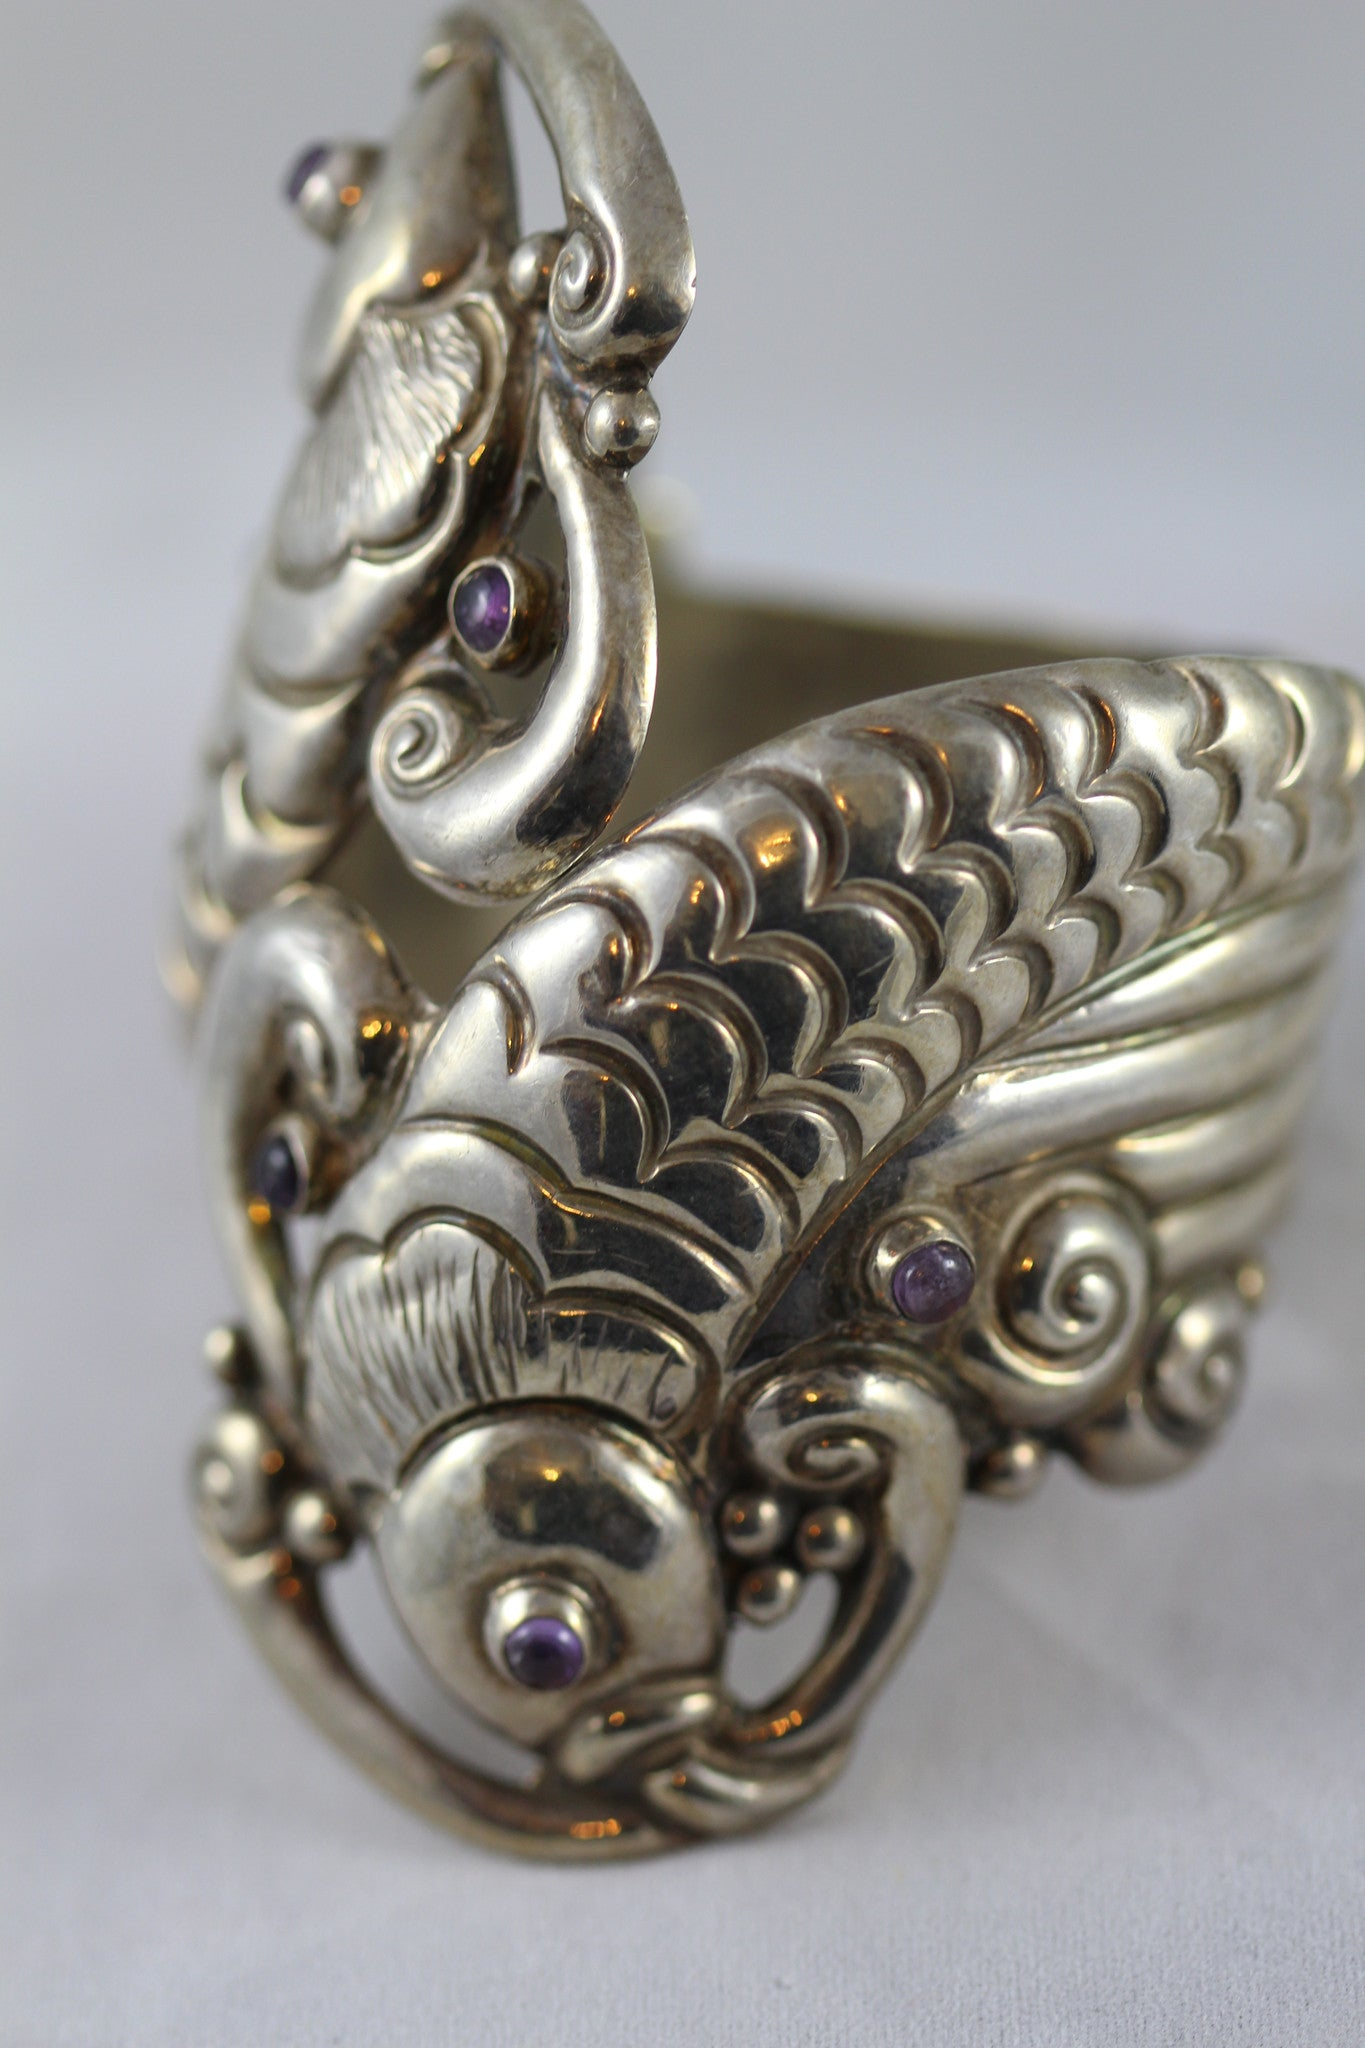 Mexico Fish Wrist Clamp Bracelet